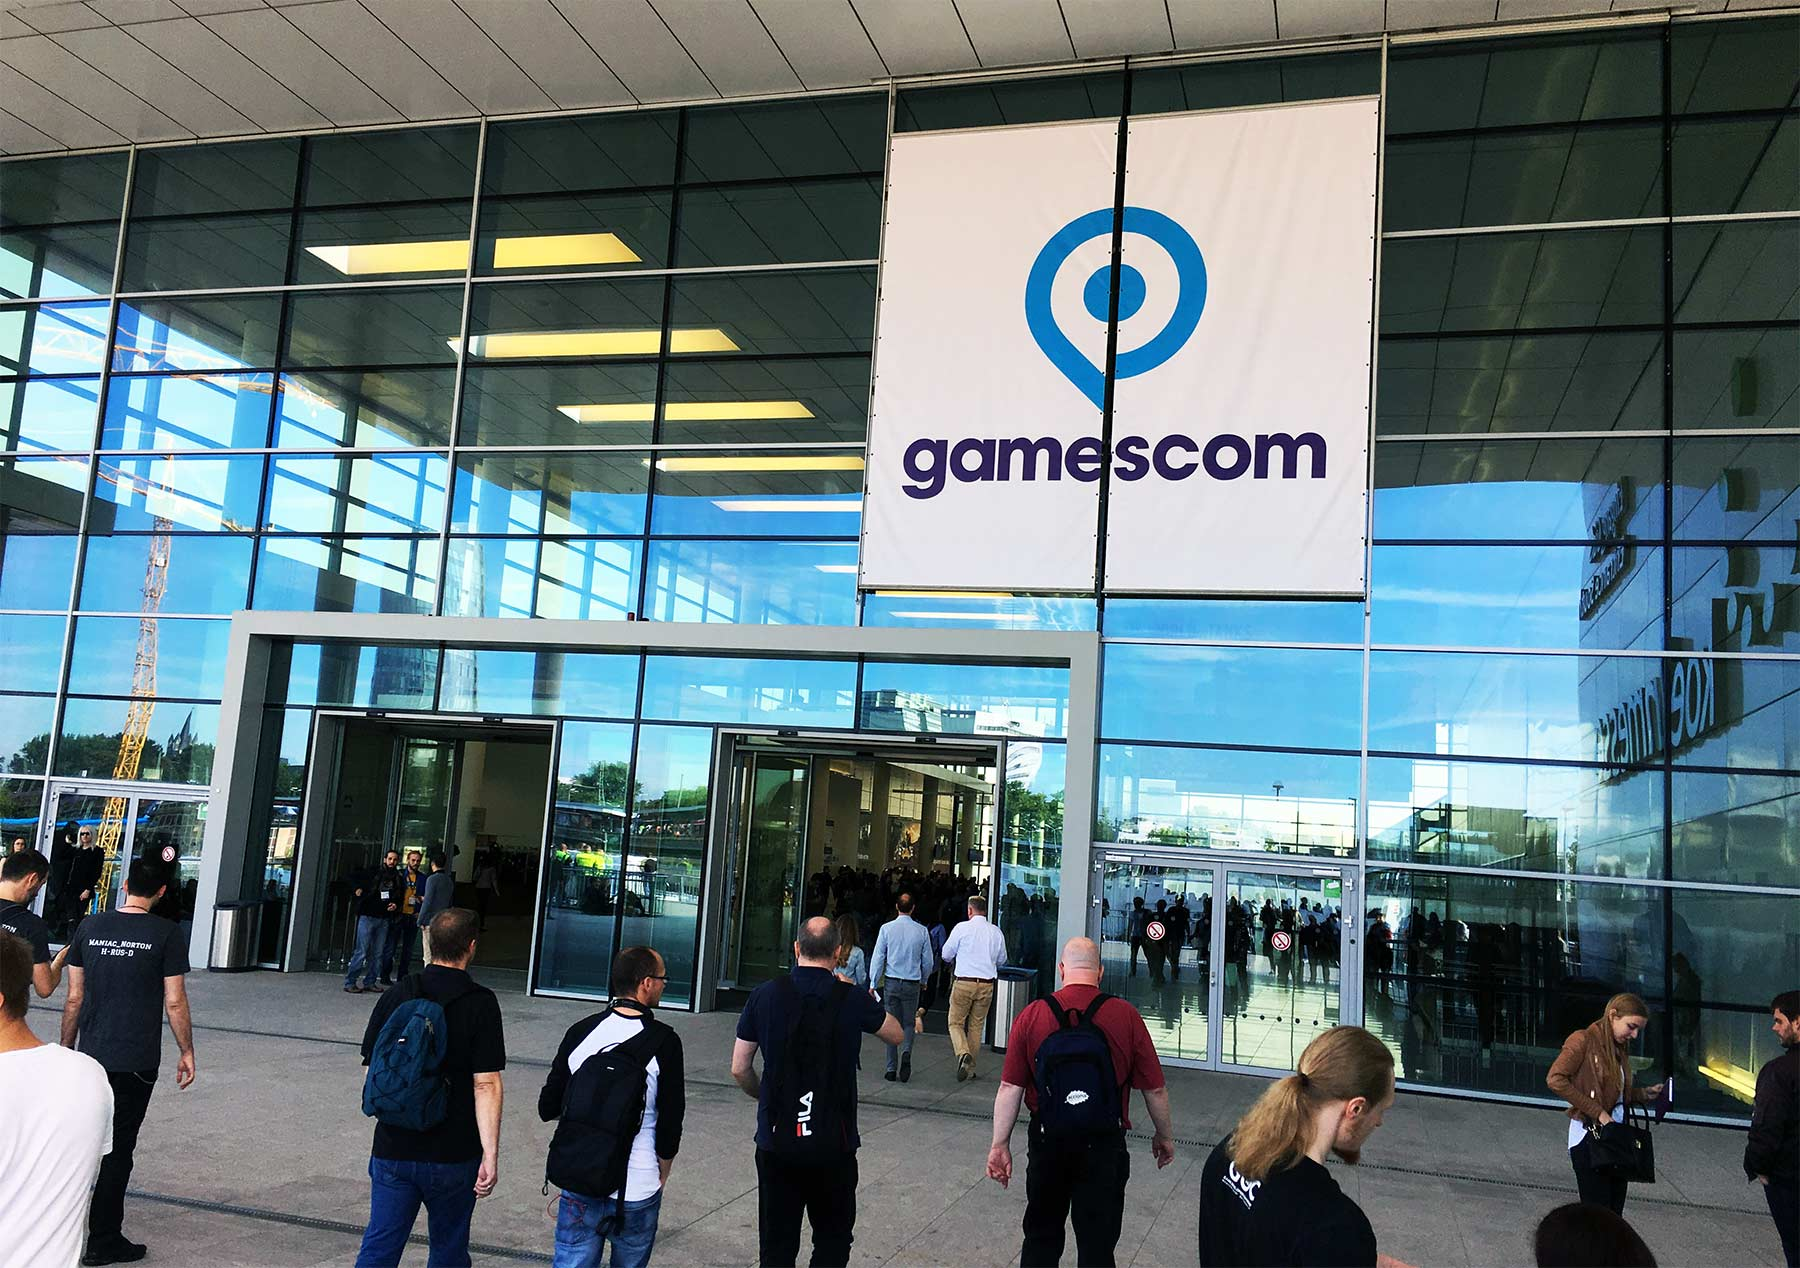 Meine Highlights der Gamescom 2017